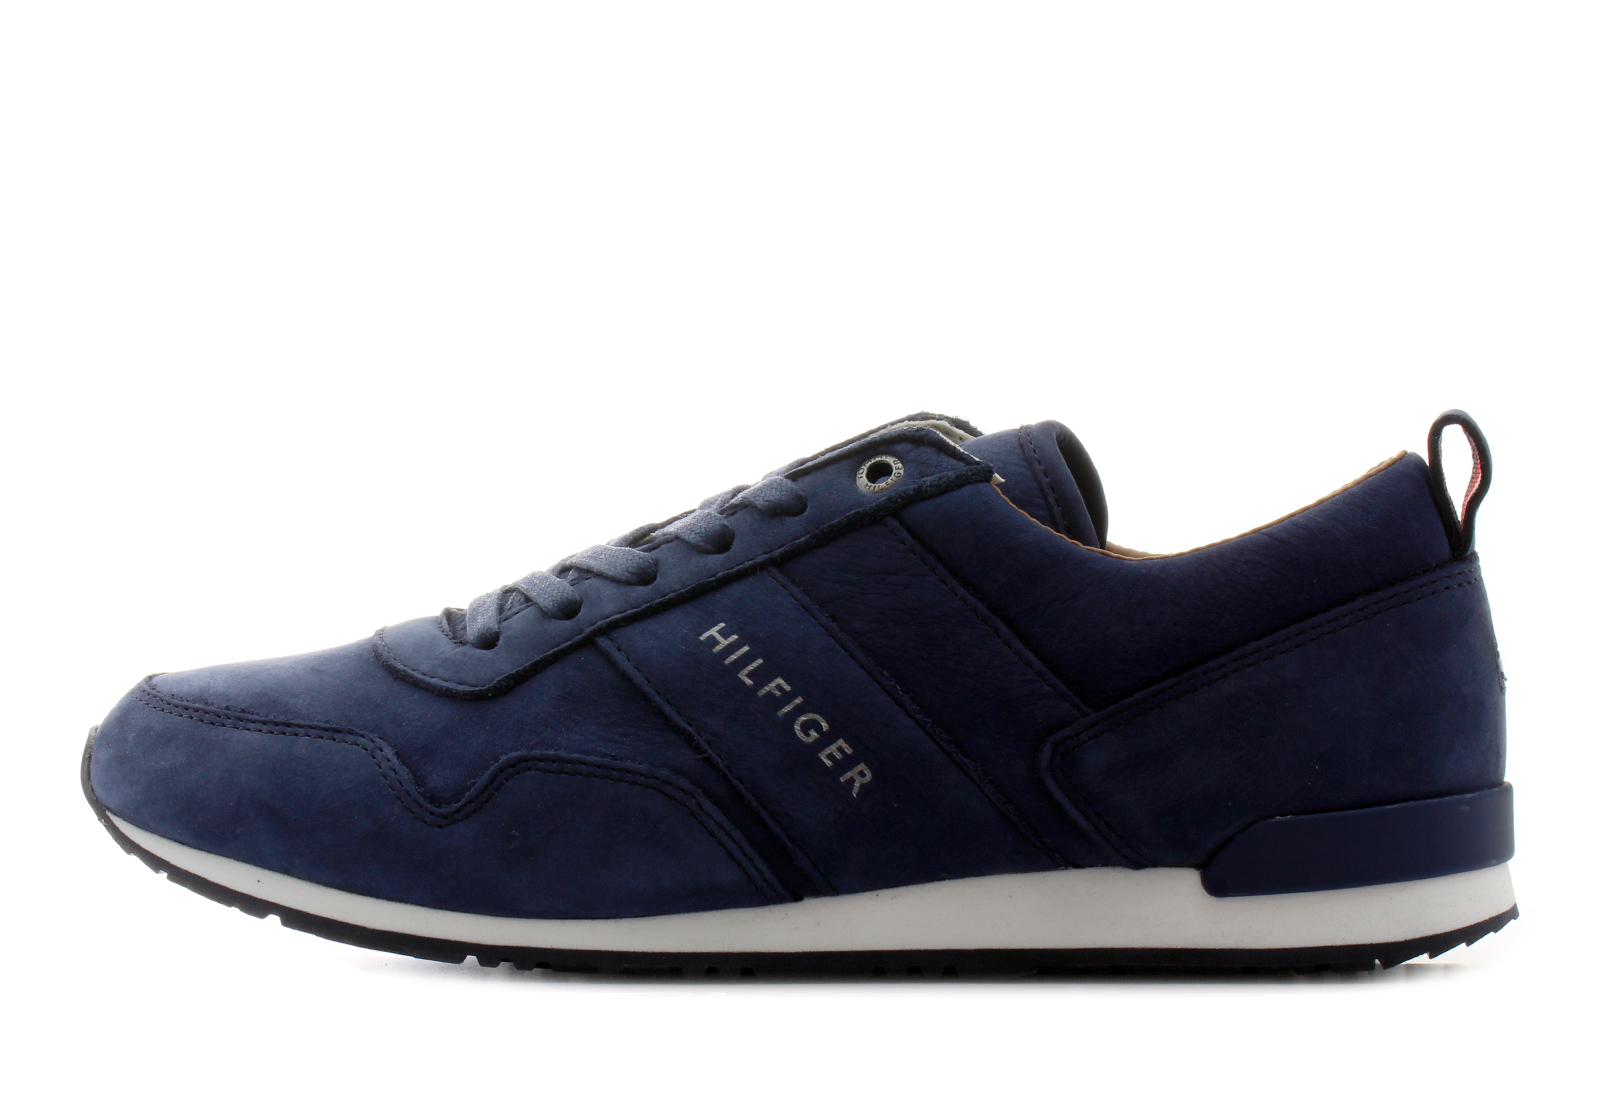 5d172ade31 Tommy Hilfiger Topánky - Maxwell 11 - 18S-1437-014 - Tenisky ...